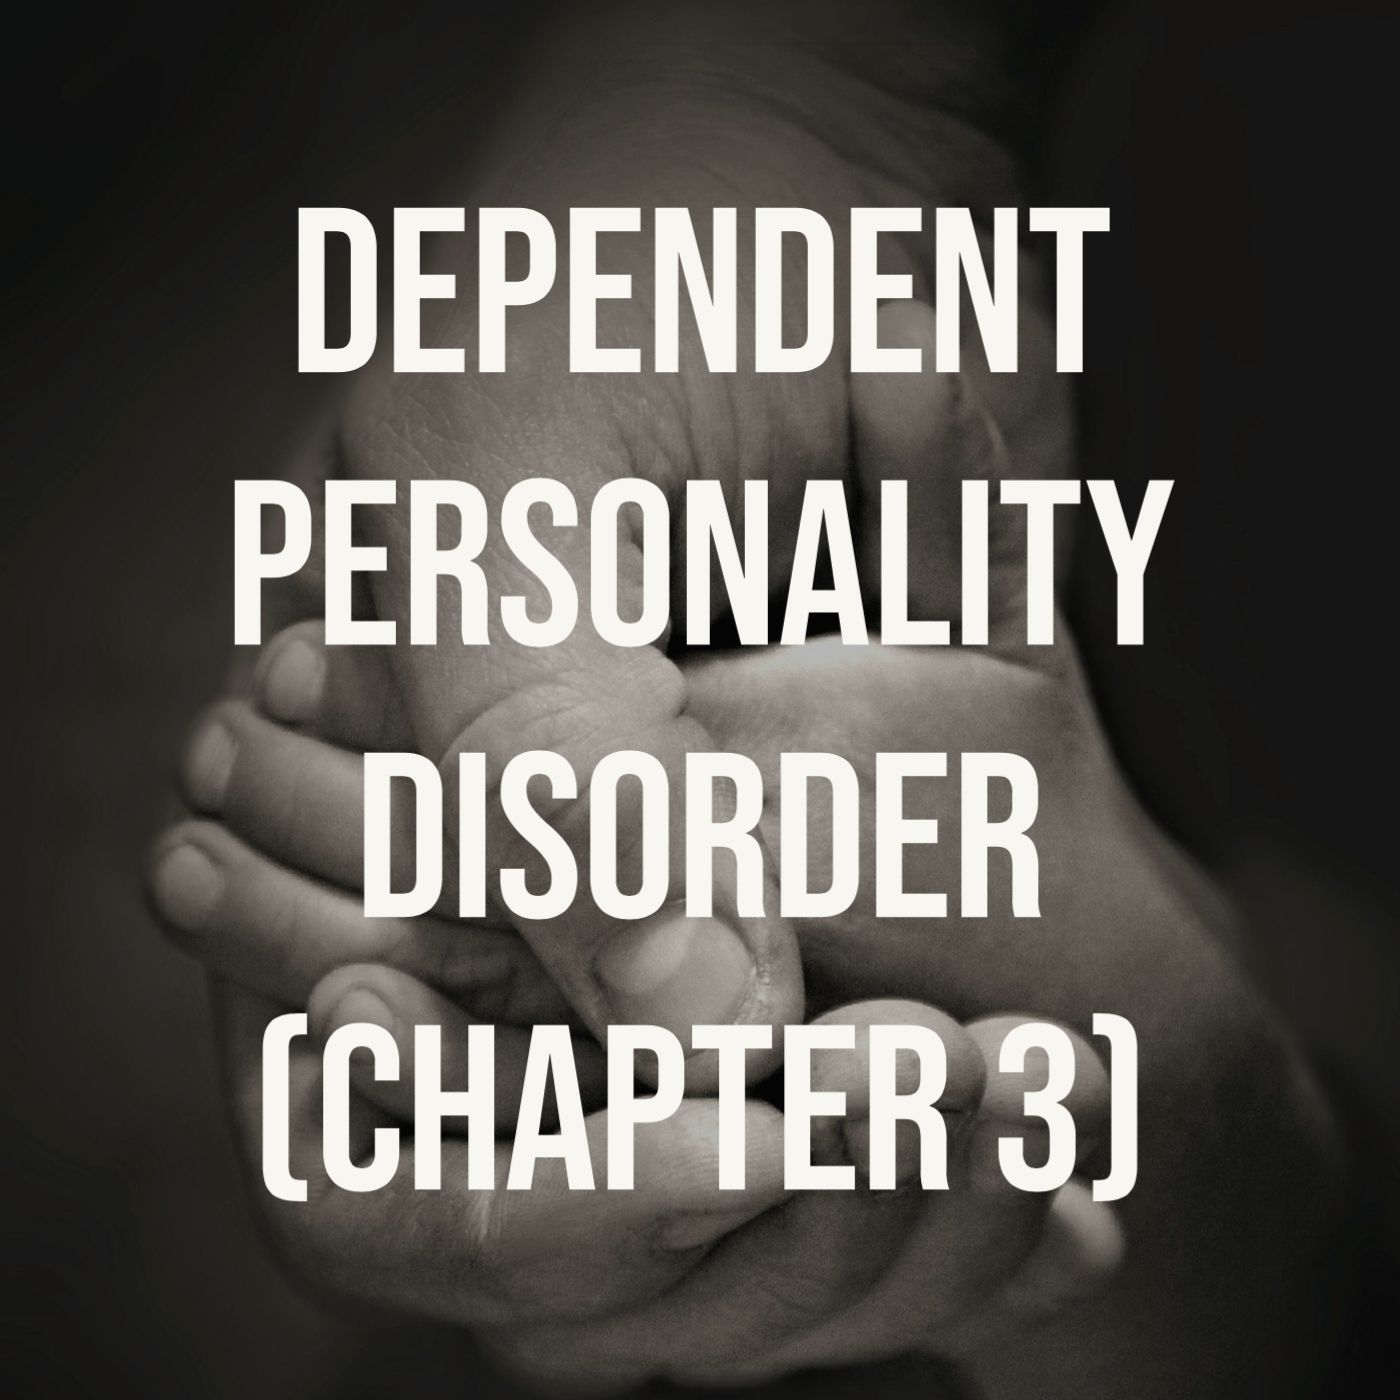 Dependent Personality Disorder - (Chapter 3)